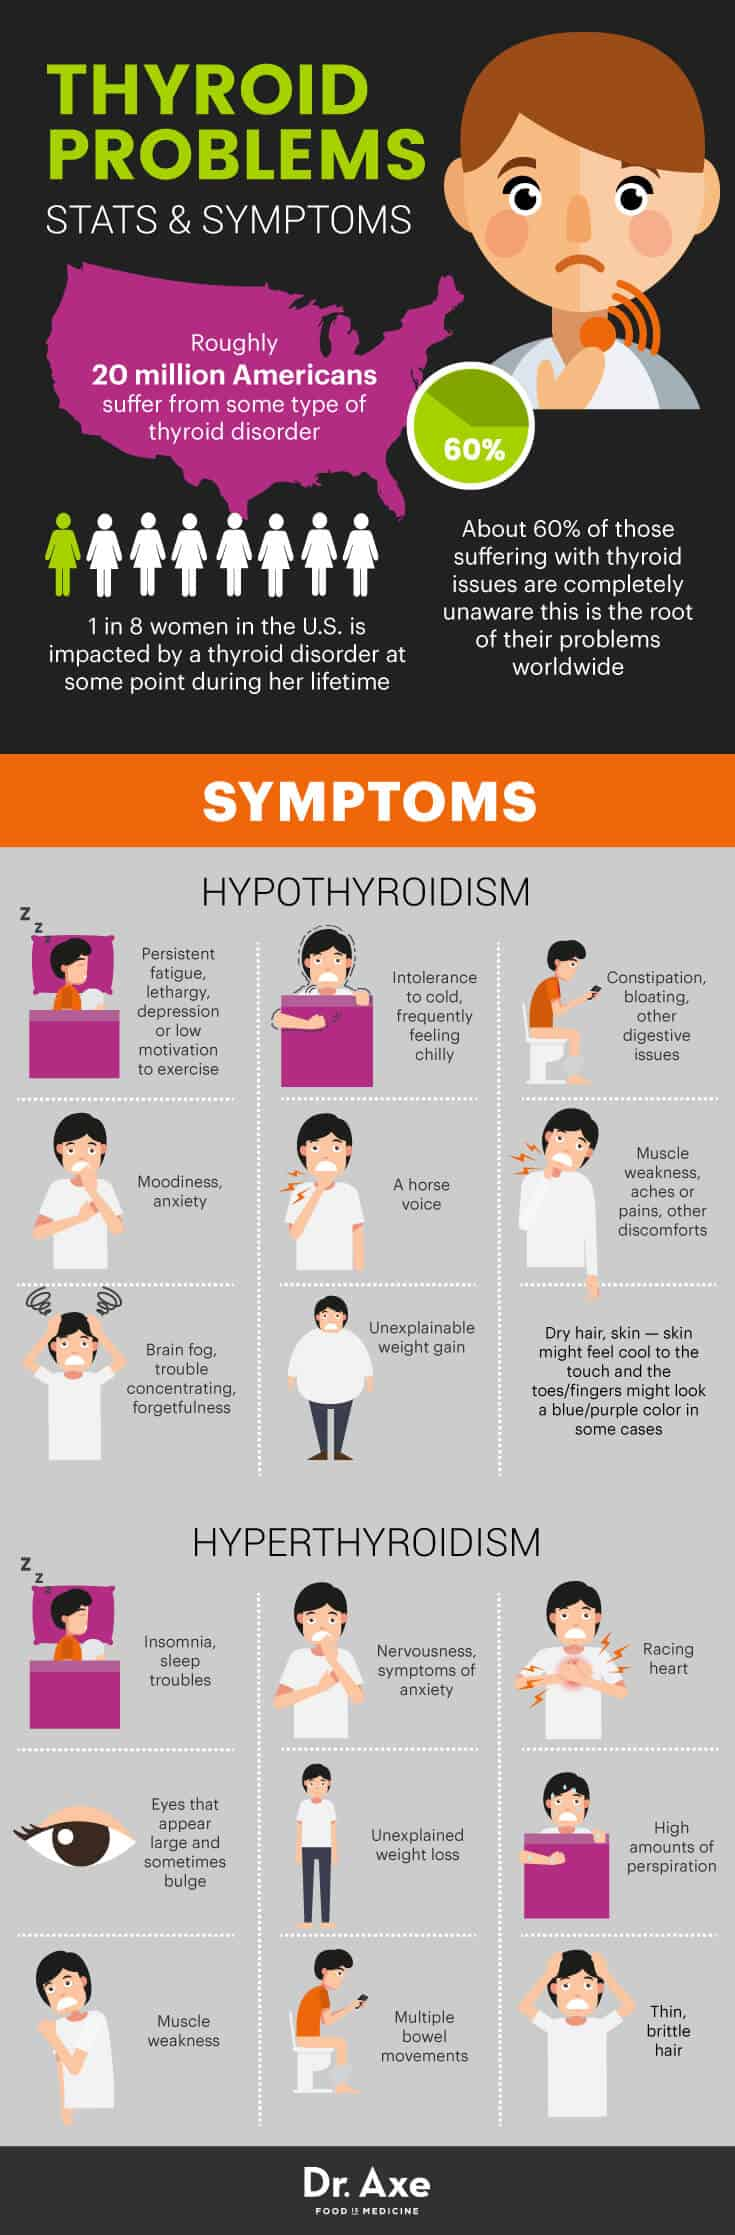 What are the signs of thyroid disease in women